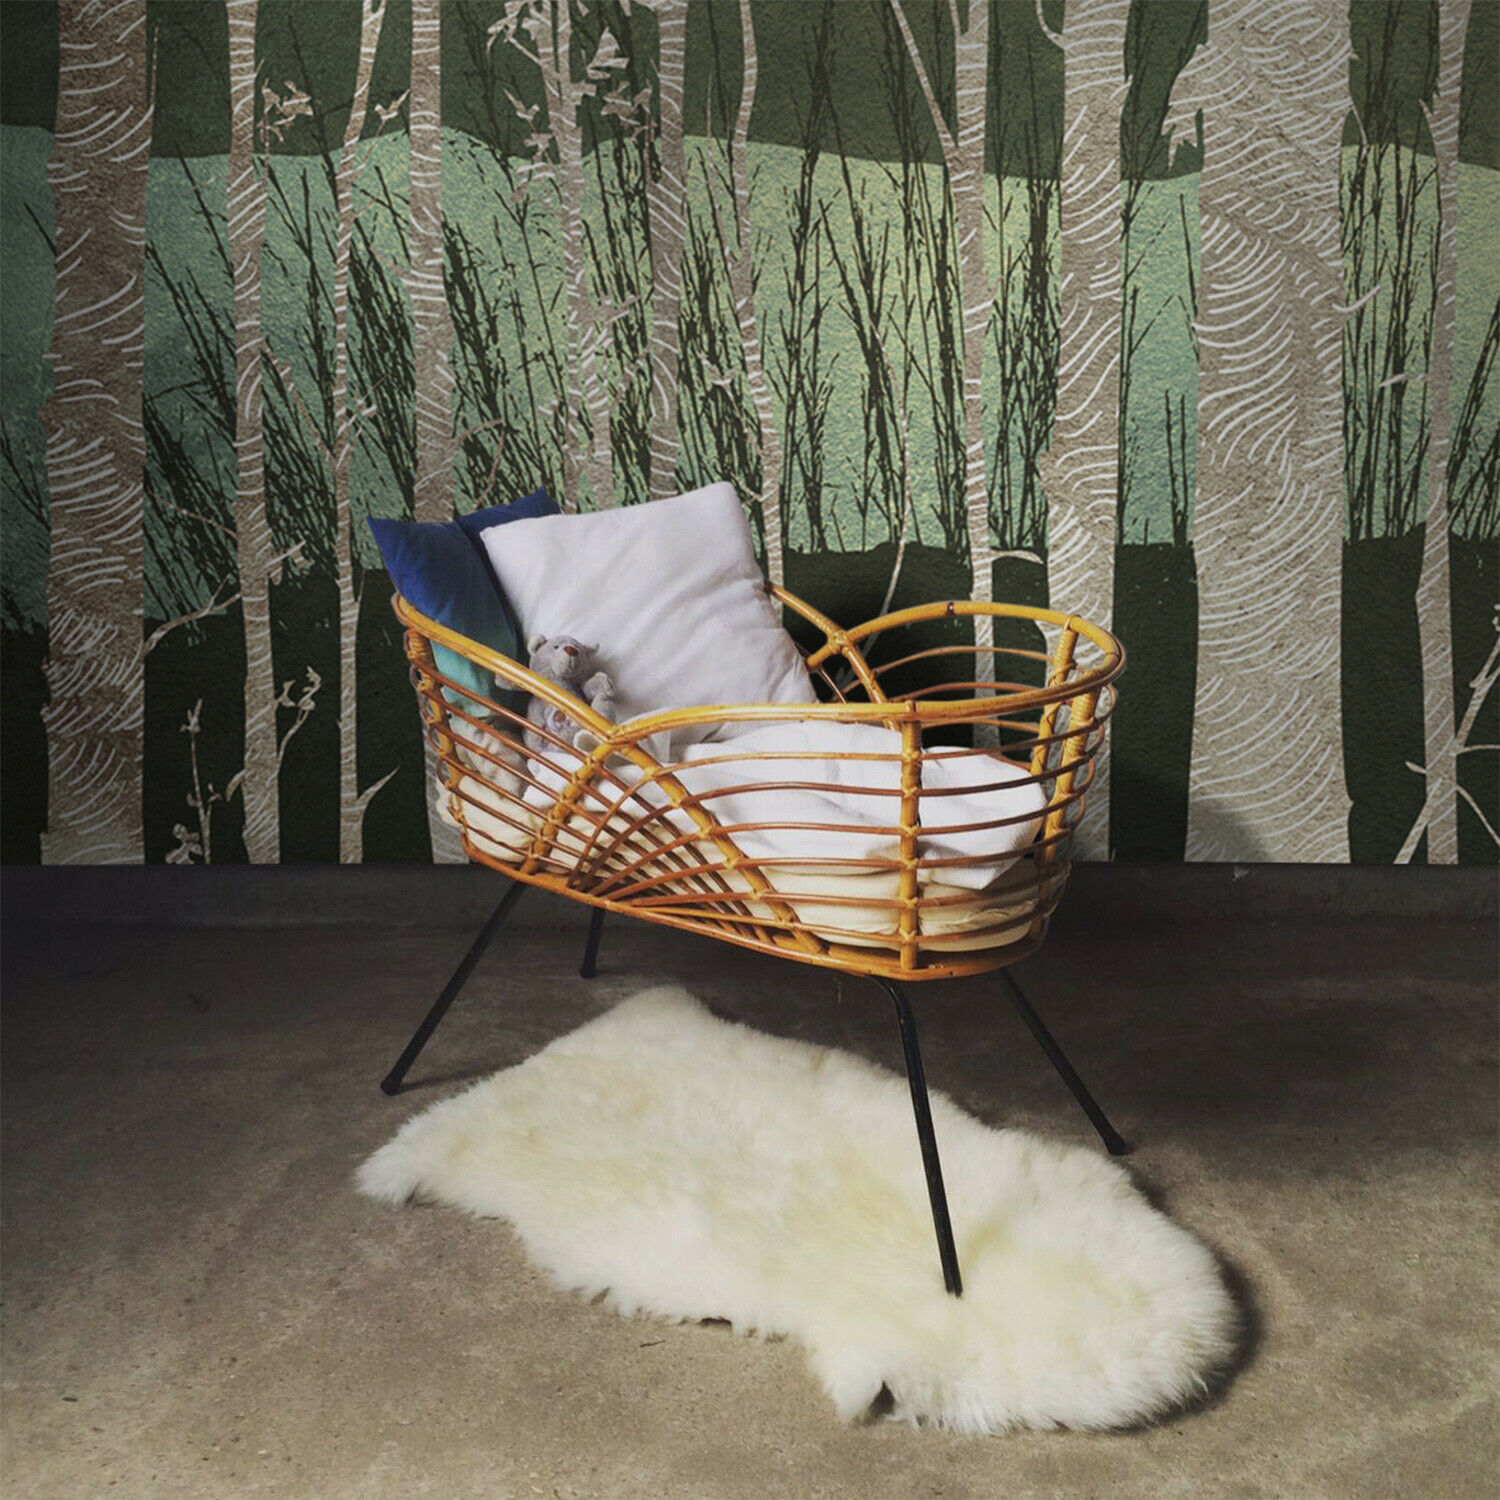 Removable Wallpaper Textured Birch Trees for nurseries kids room woods Forest